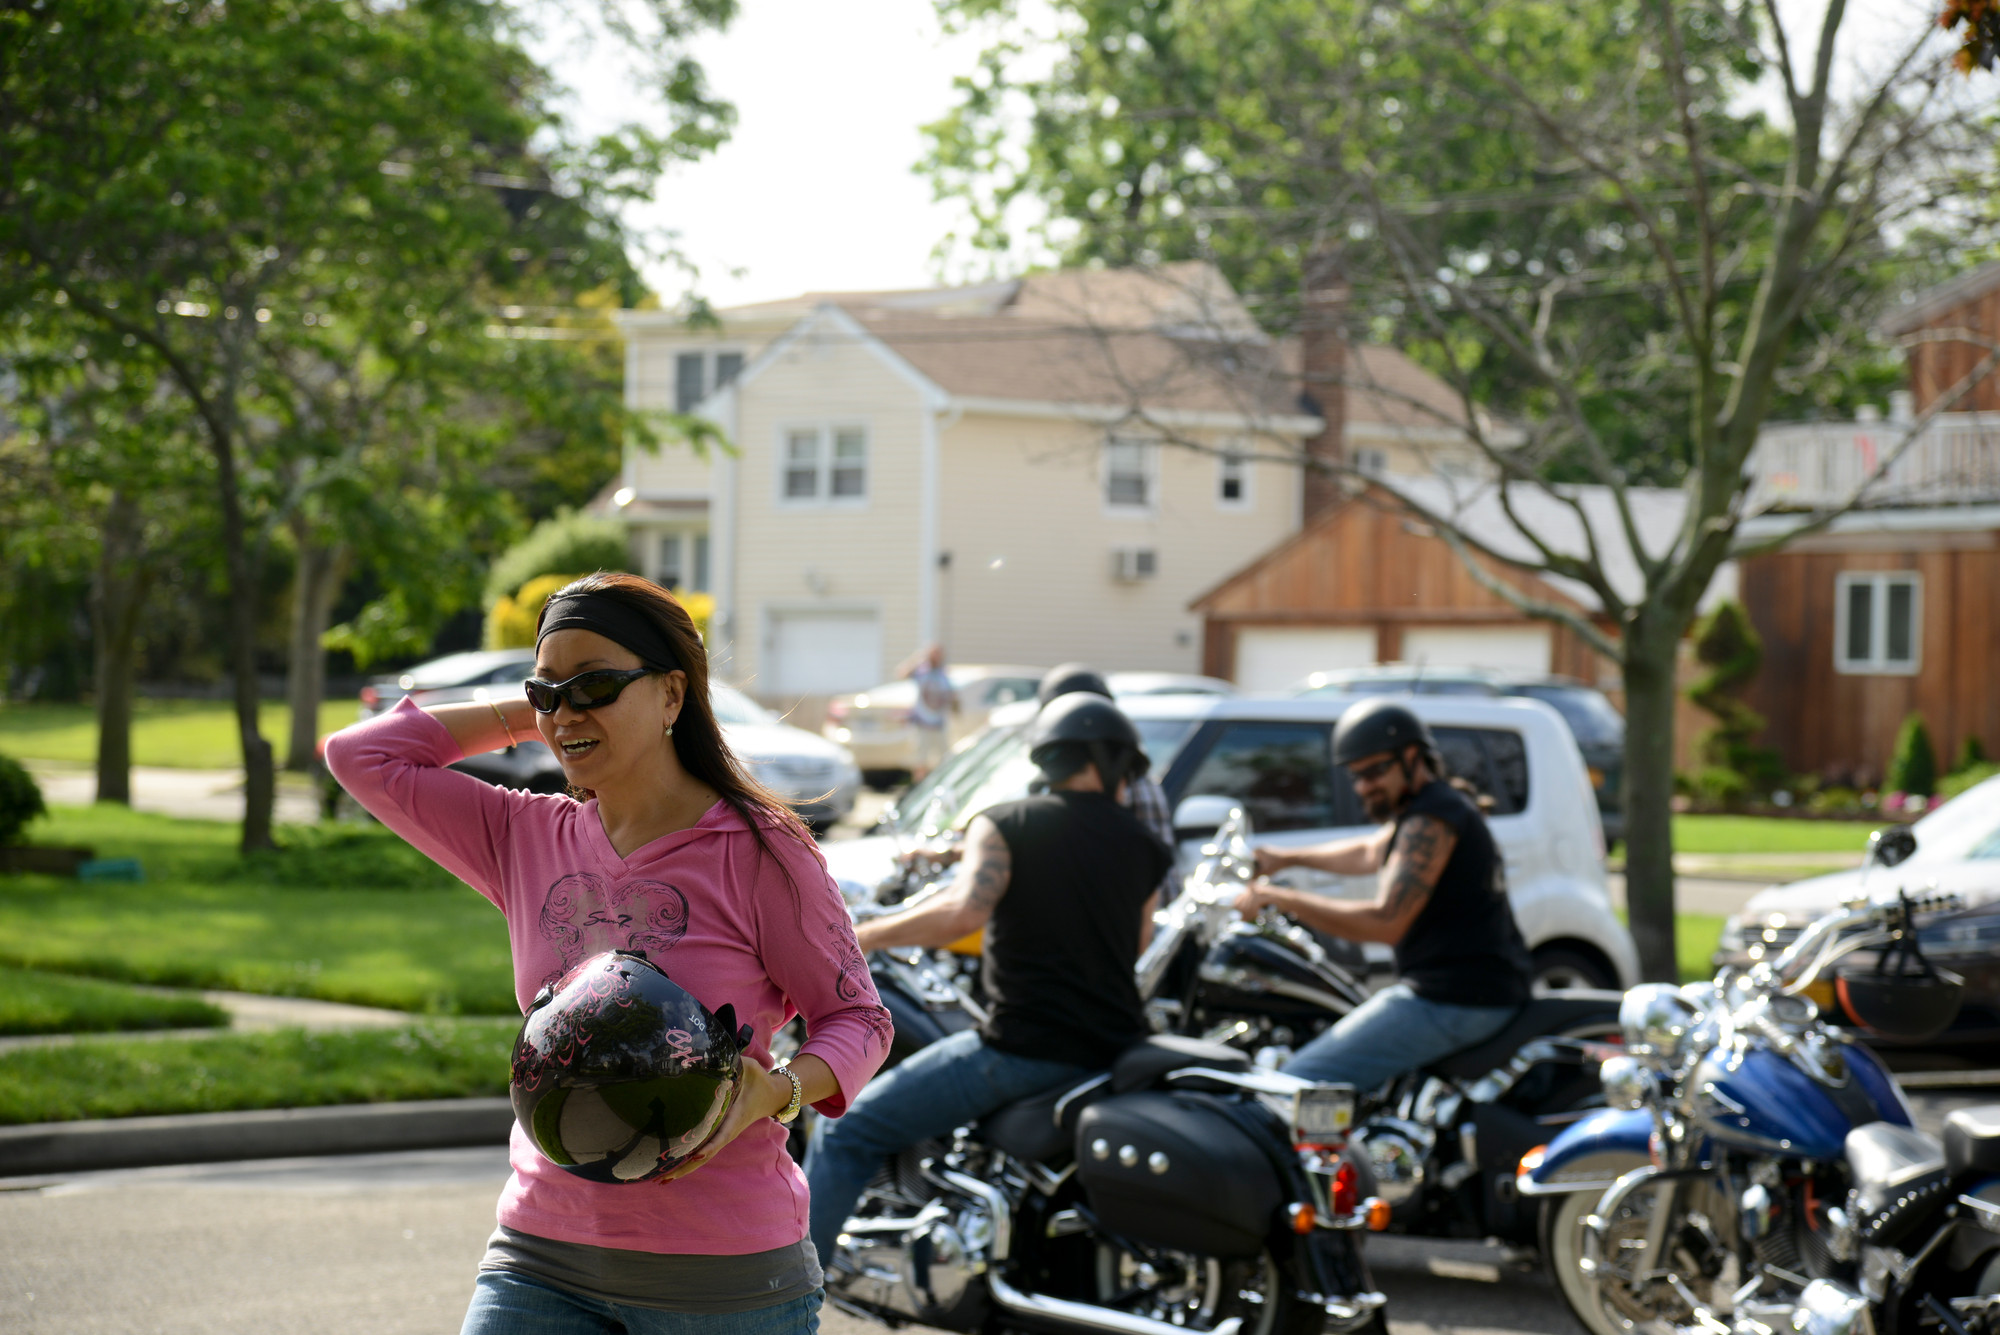 Margaret Yang looked ready to ride as a charity motorcycle run to benefit the Maurer Foundation was set to take off.